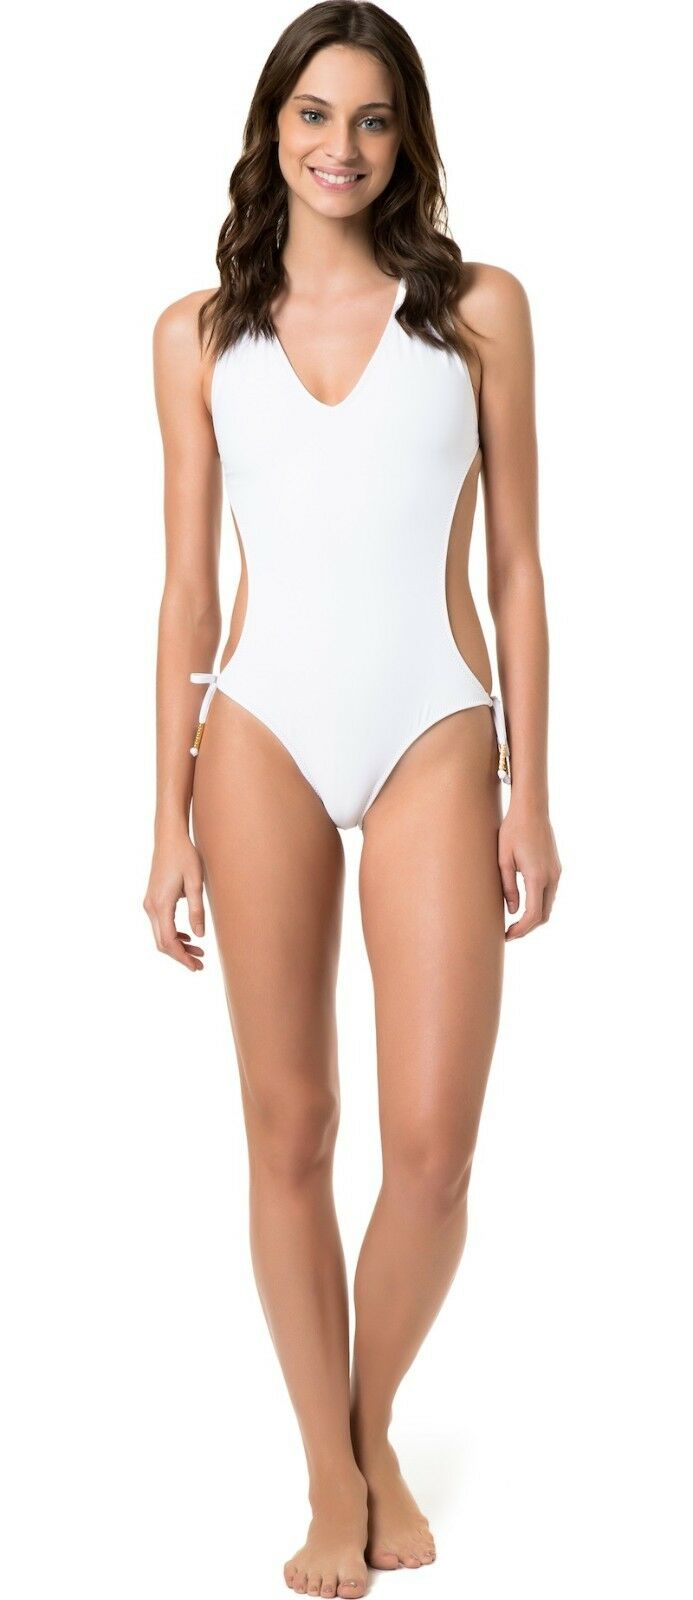 Salinas Frente Unica Monokini Cut -Out in Solid White